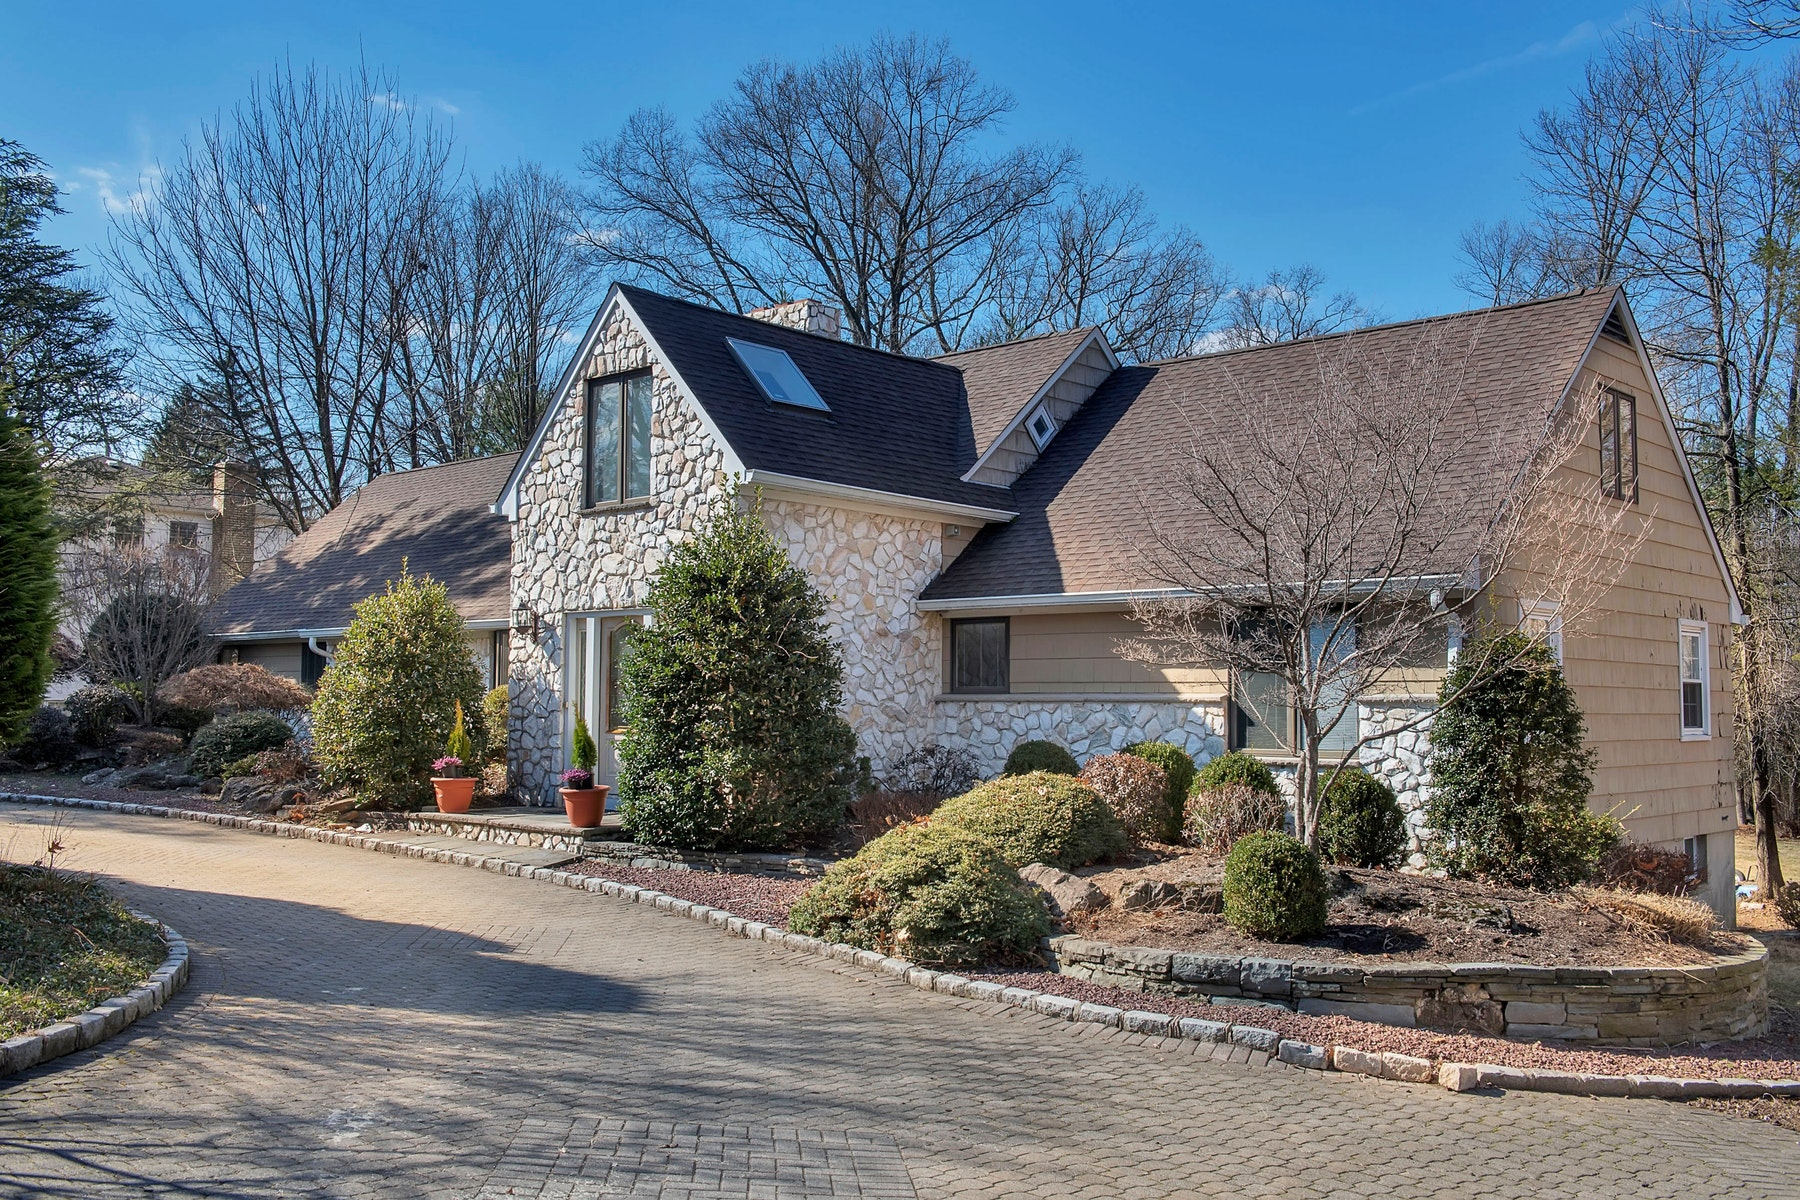 Single Family Home for Sale at Sophisticated Expanded Ranch 141 Summit Road Florham Park, New Jersey 07932 United States